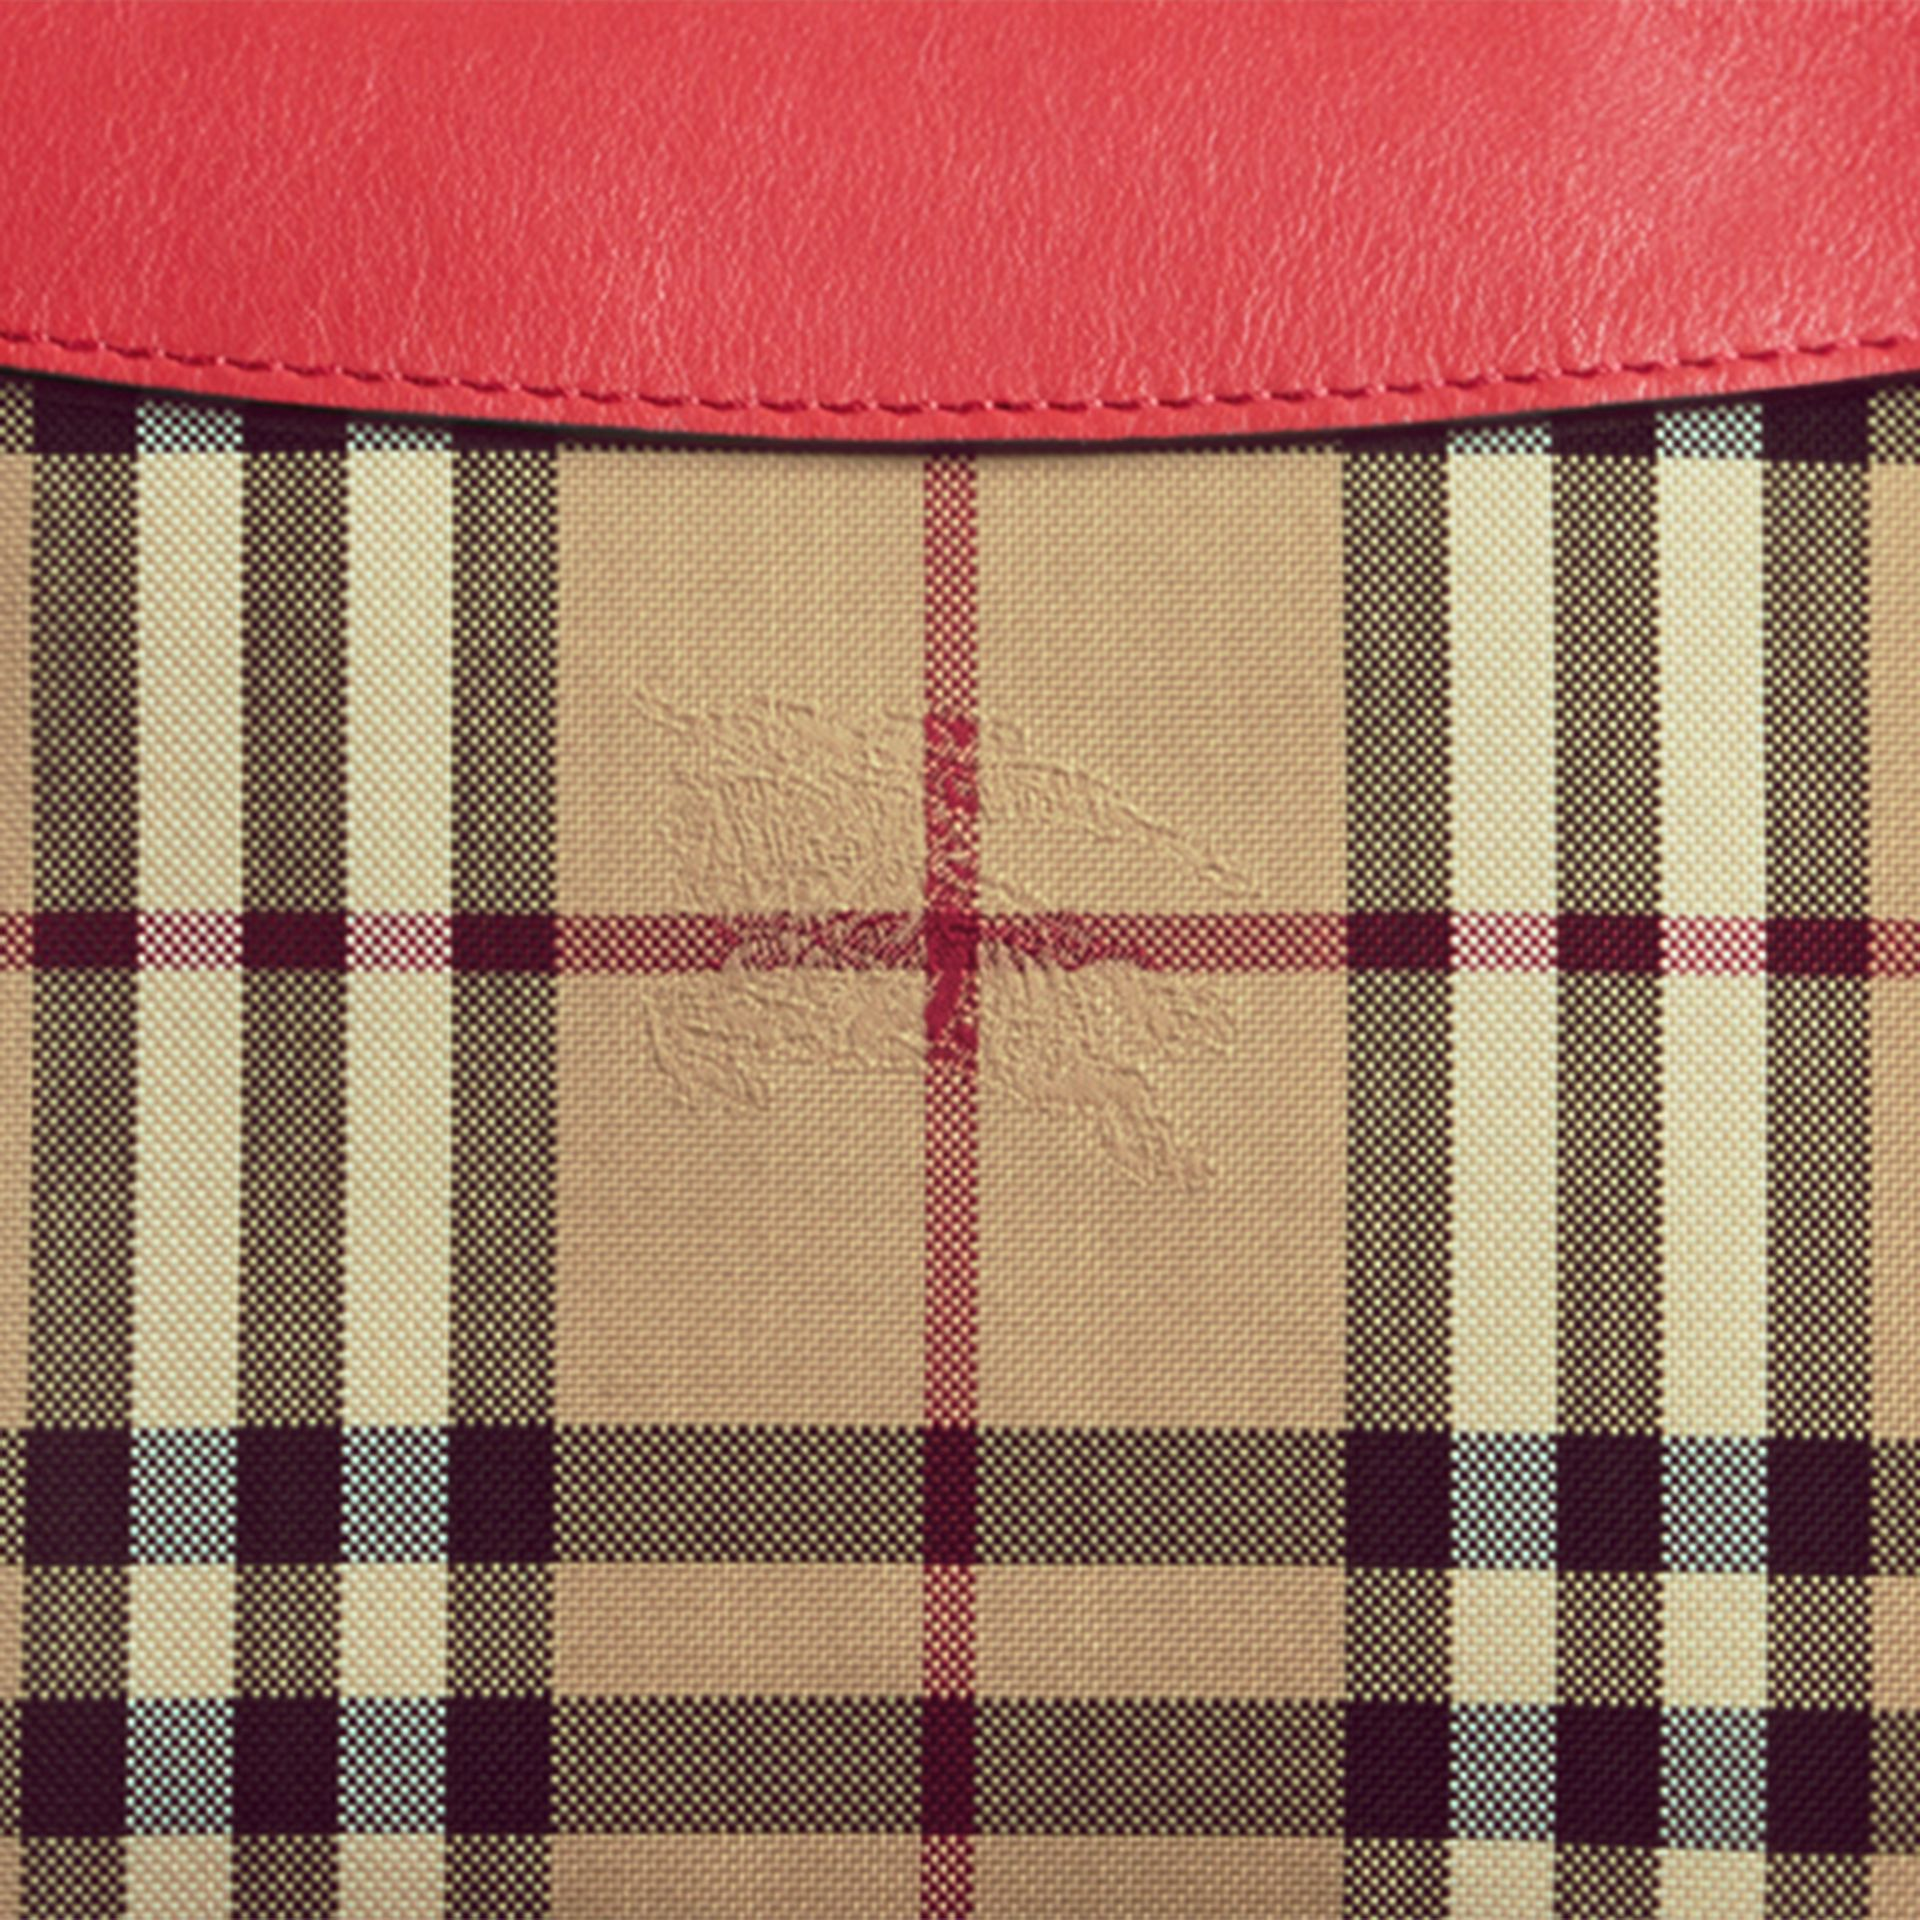 Horseferry Check and Leather Clutch Bag Parade Red - gallery image 2